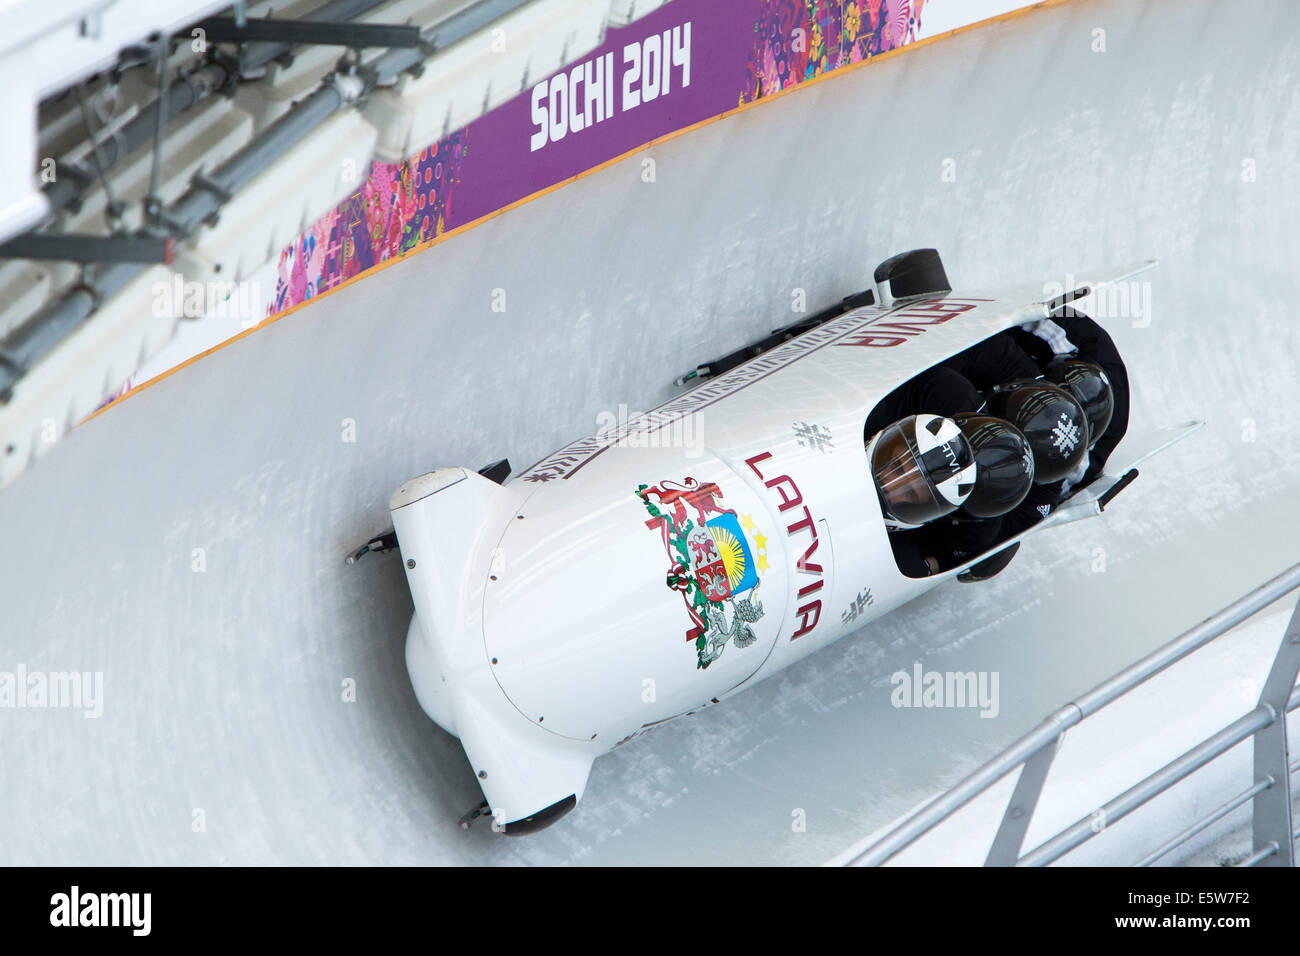 4 Man Bobsled Training At The Olympic Winter Games Sochi